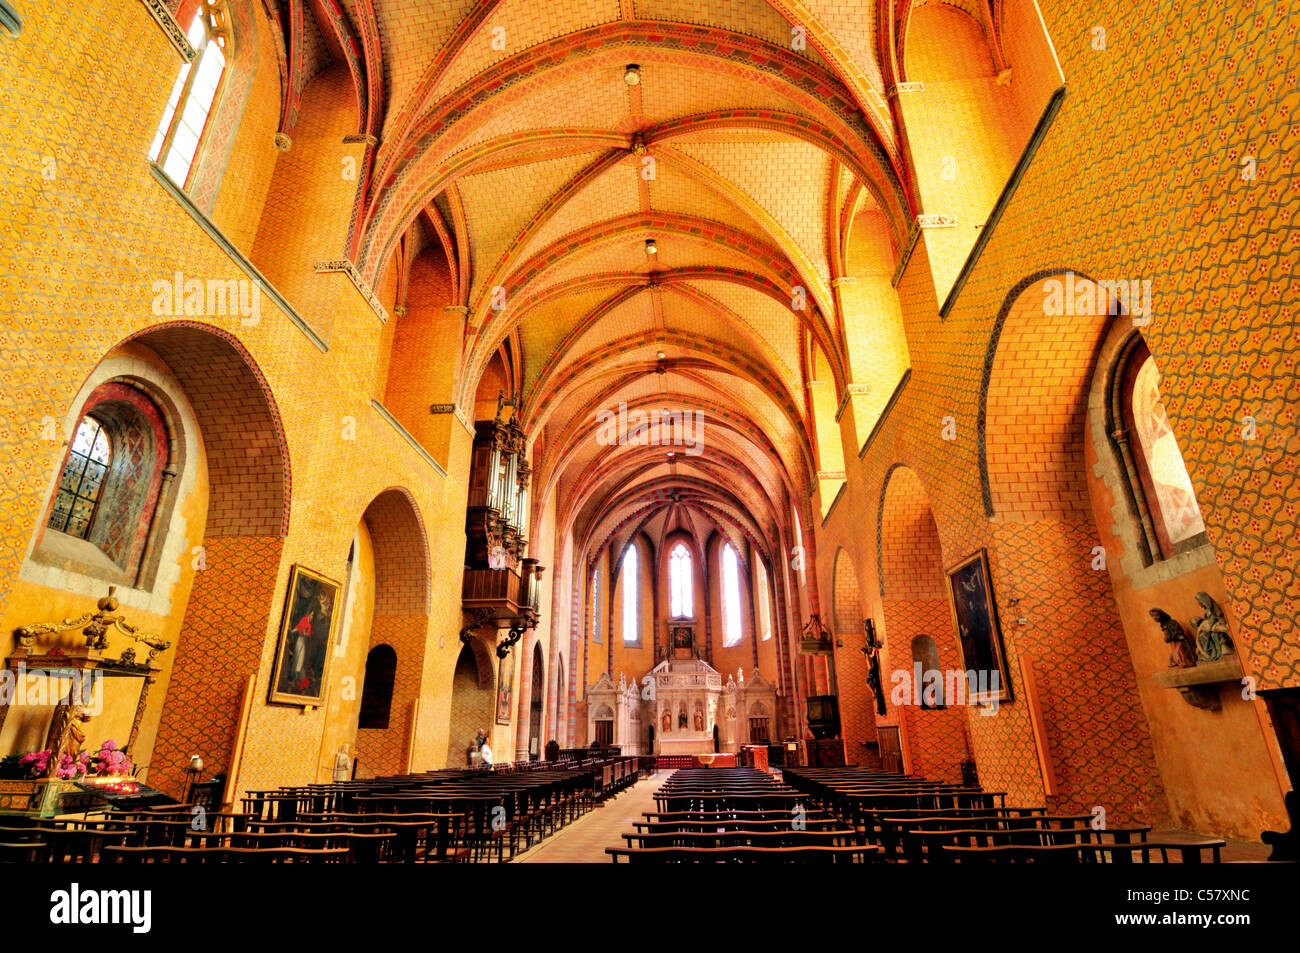 France, St. James Way: Eglise St. Pierre in Moissac - Stock Image